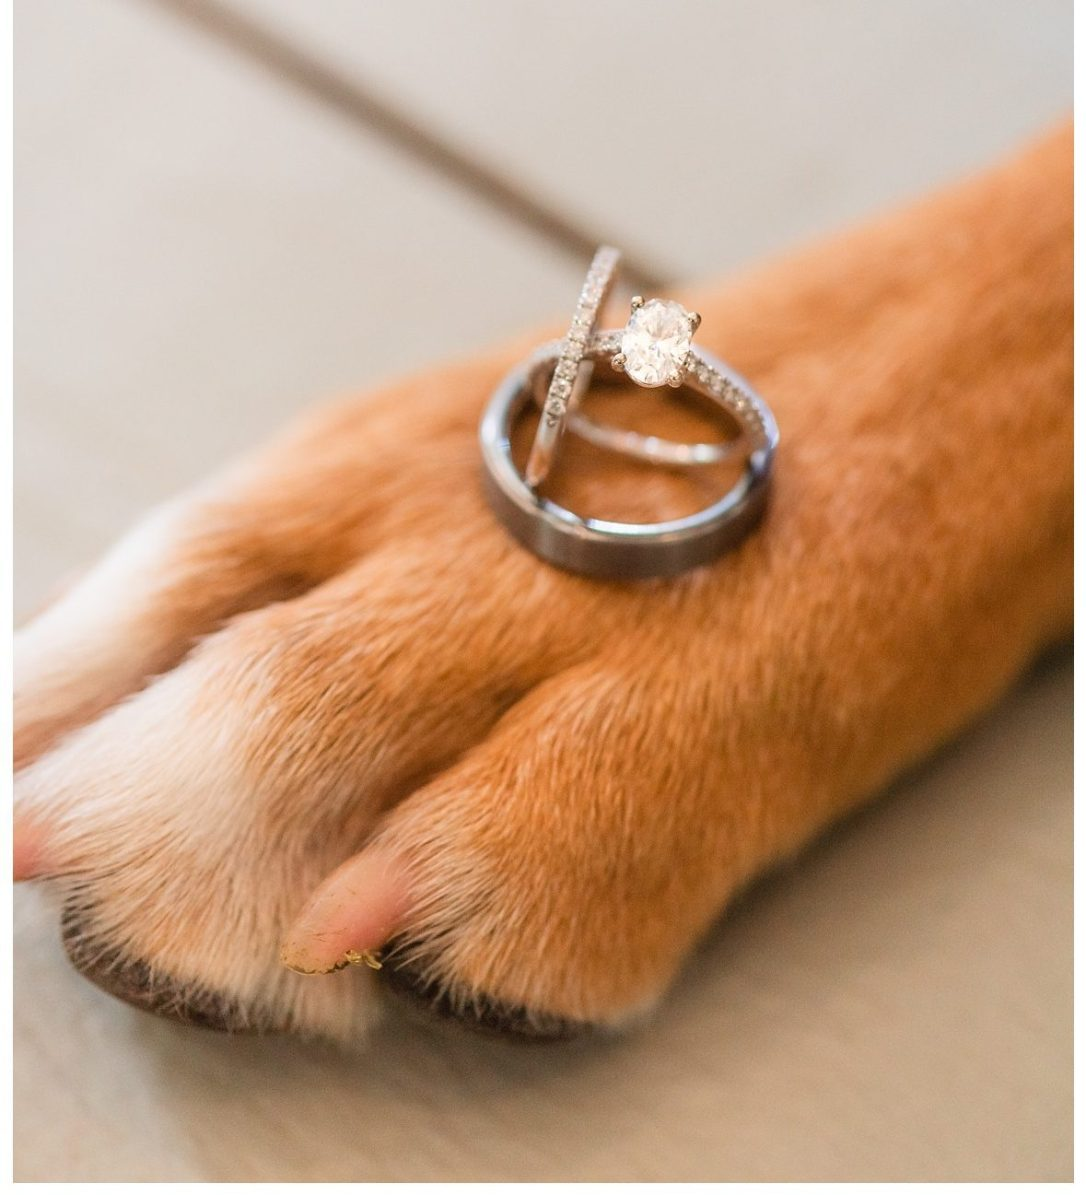 Chattanooga photographer who loves animals with wedding rings balanced on dog paw